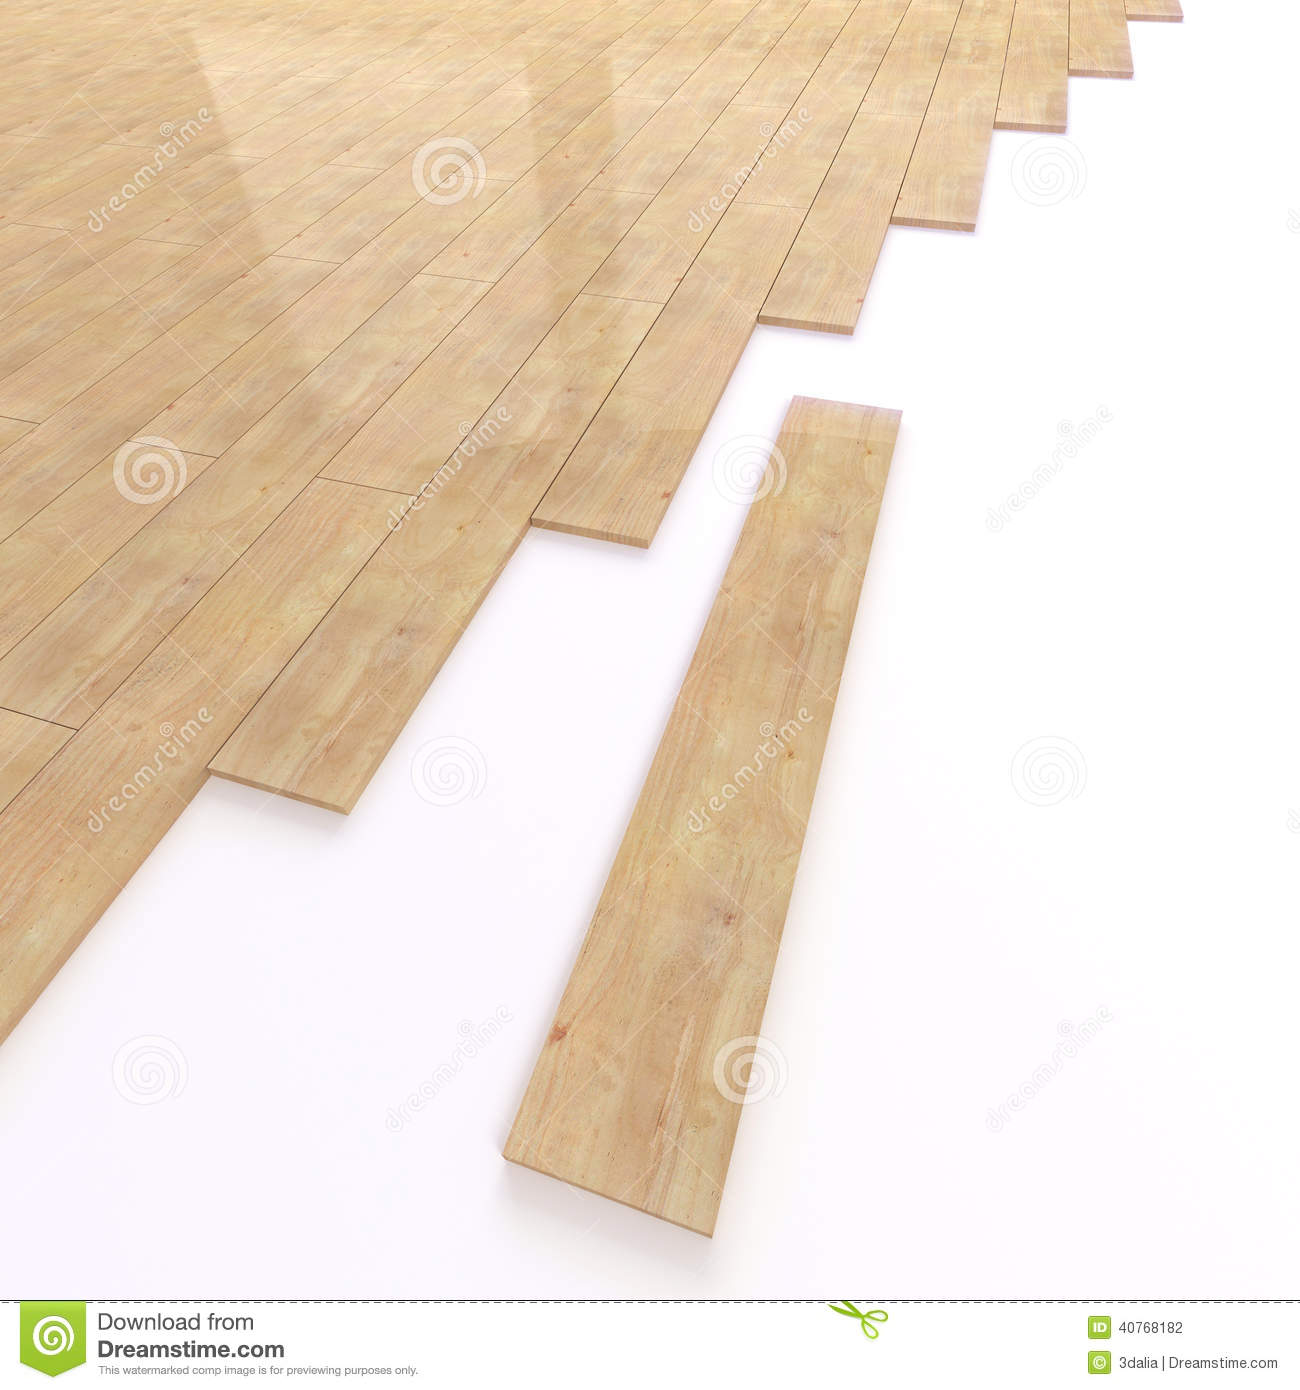 3d Bamboo Floor Tiles Stock Illustration Image 40768182